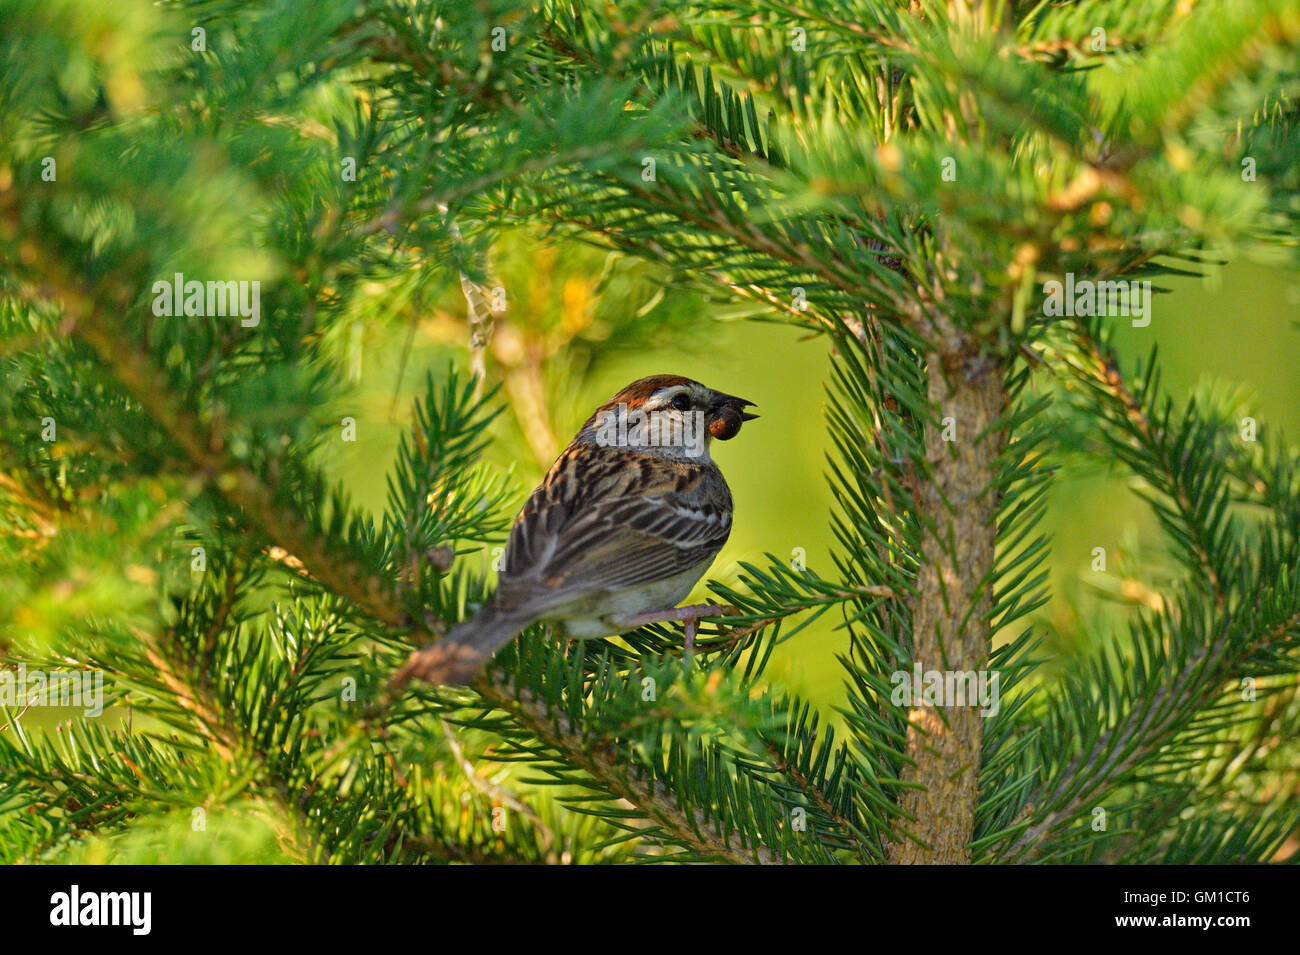 Chipping sparrow (Spizella passerina) Tending nest with young, Greater Sudbury, Ontario, Canada - Stock Image